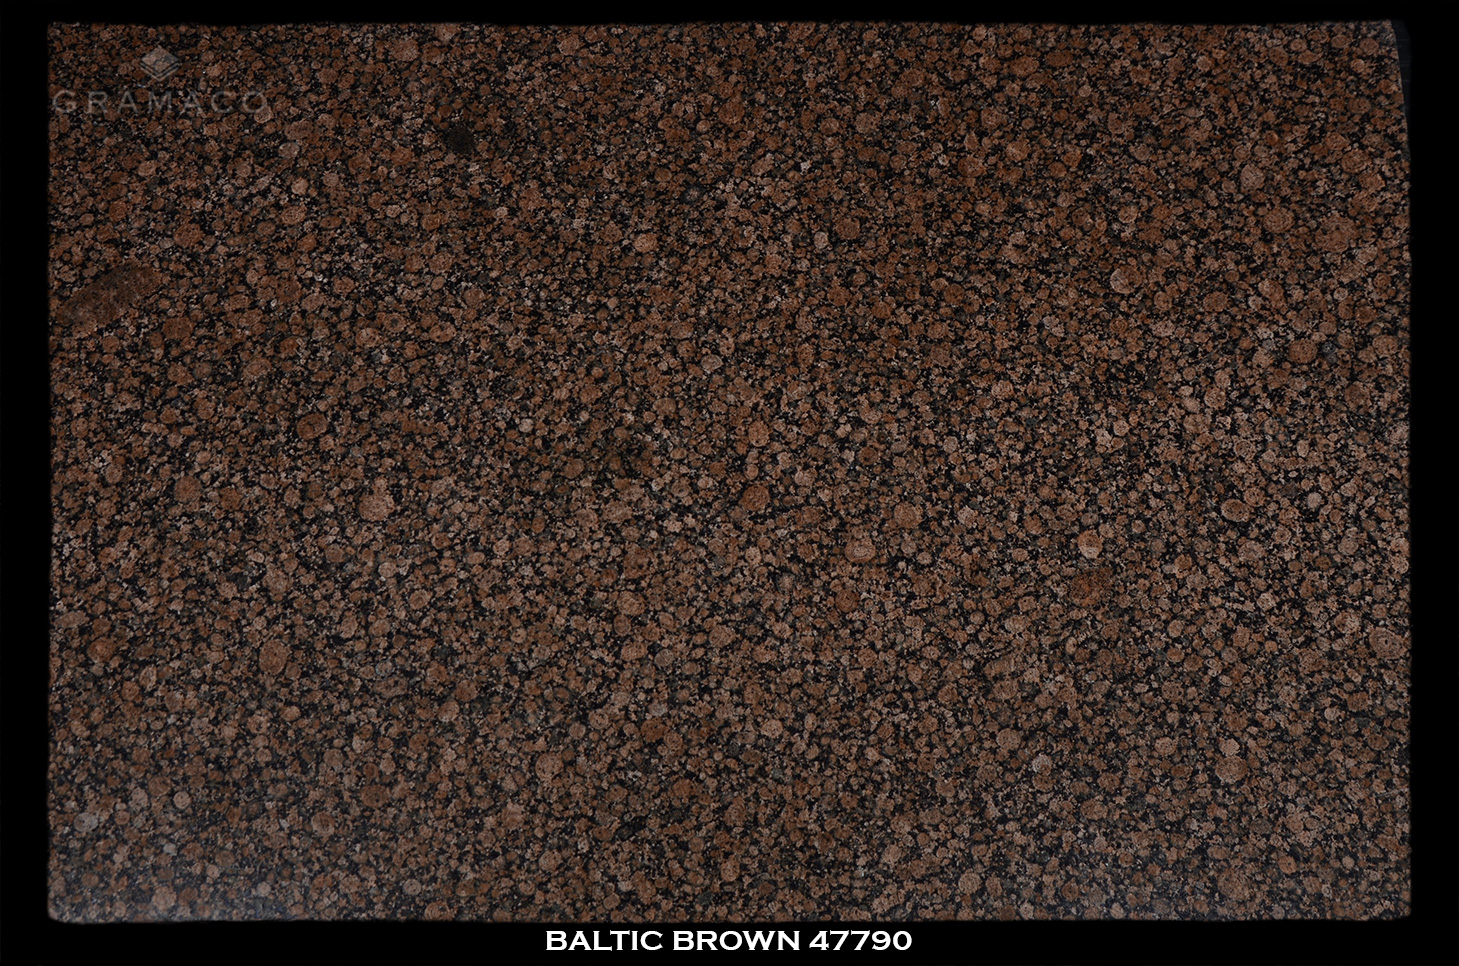 baltic-brown-47790